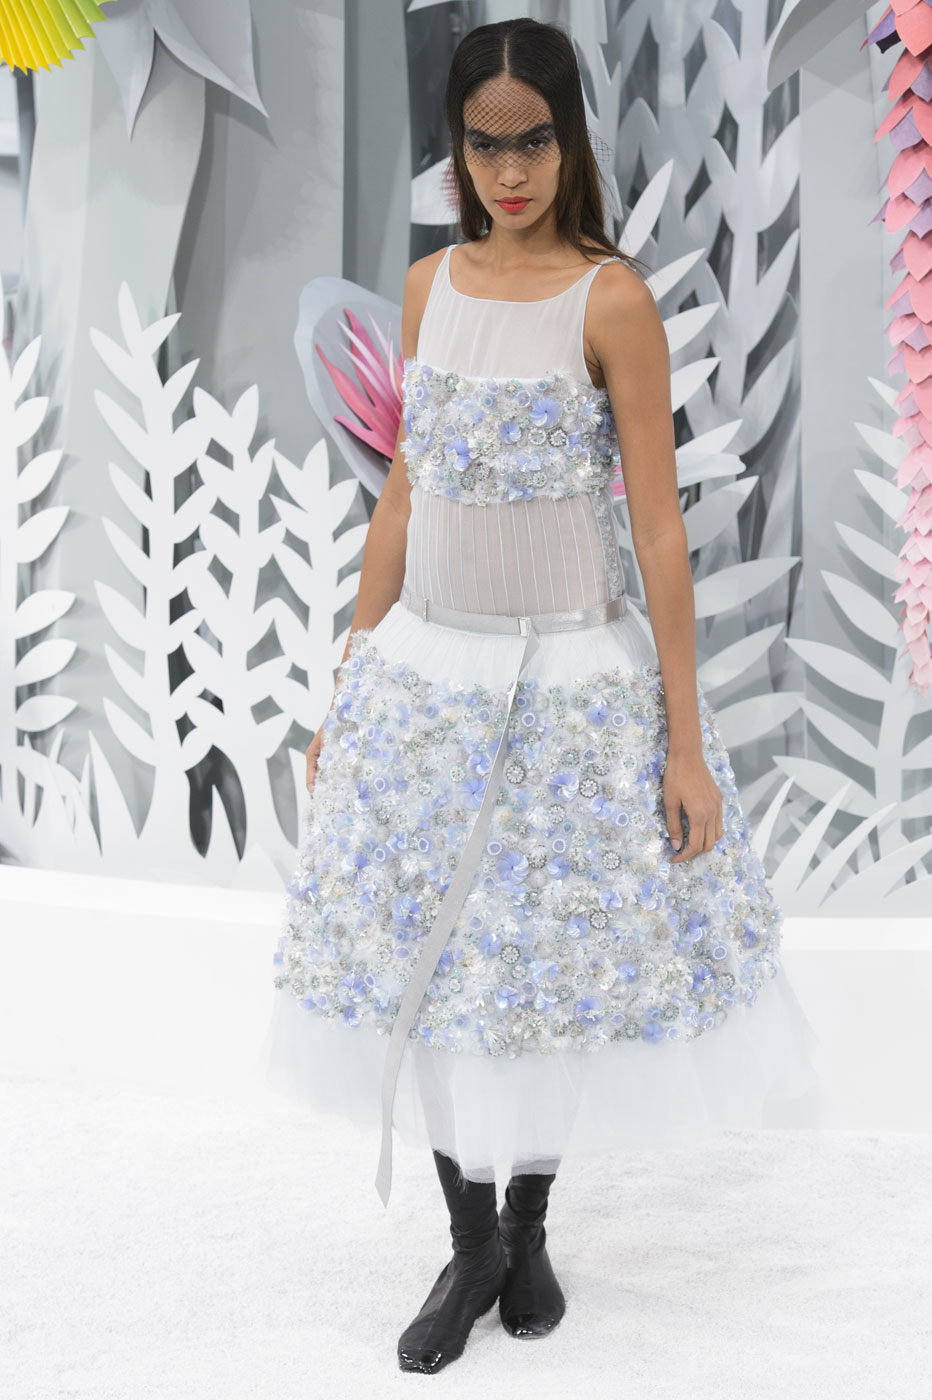 Chanel-fashion-runway-show-haute-couture-paris-spring-summer-2015-the-impression-133